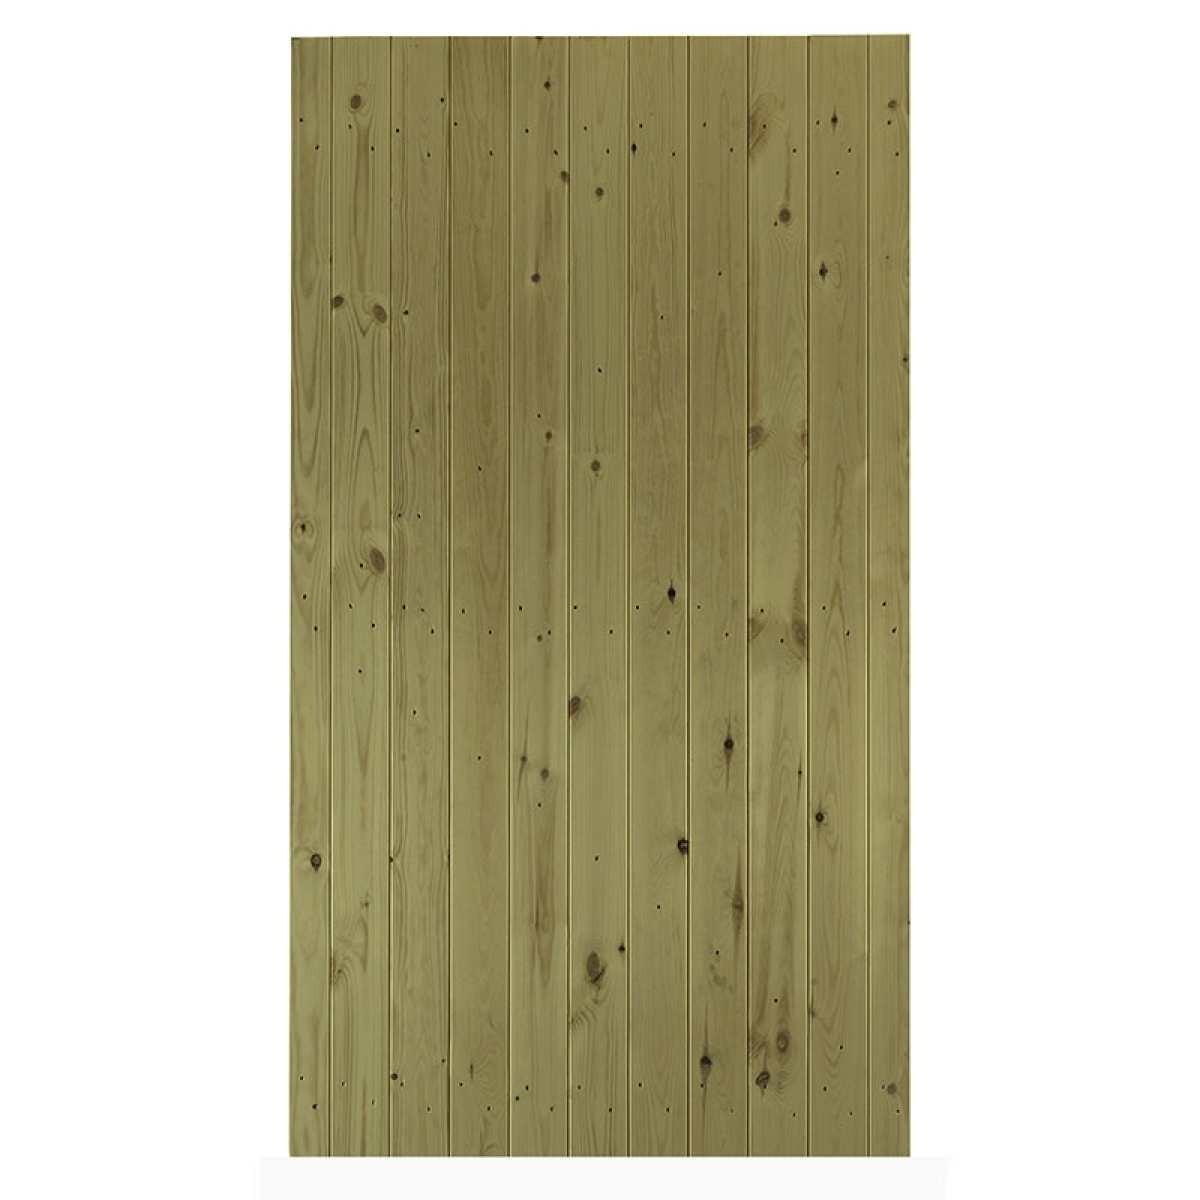 priory gate squared websterstimber Image by Websters Timber